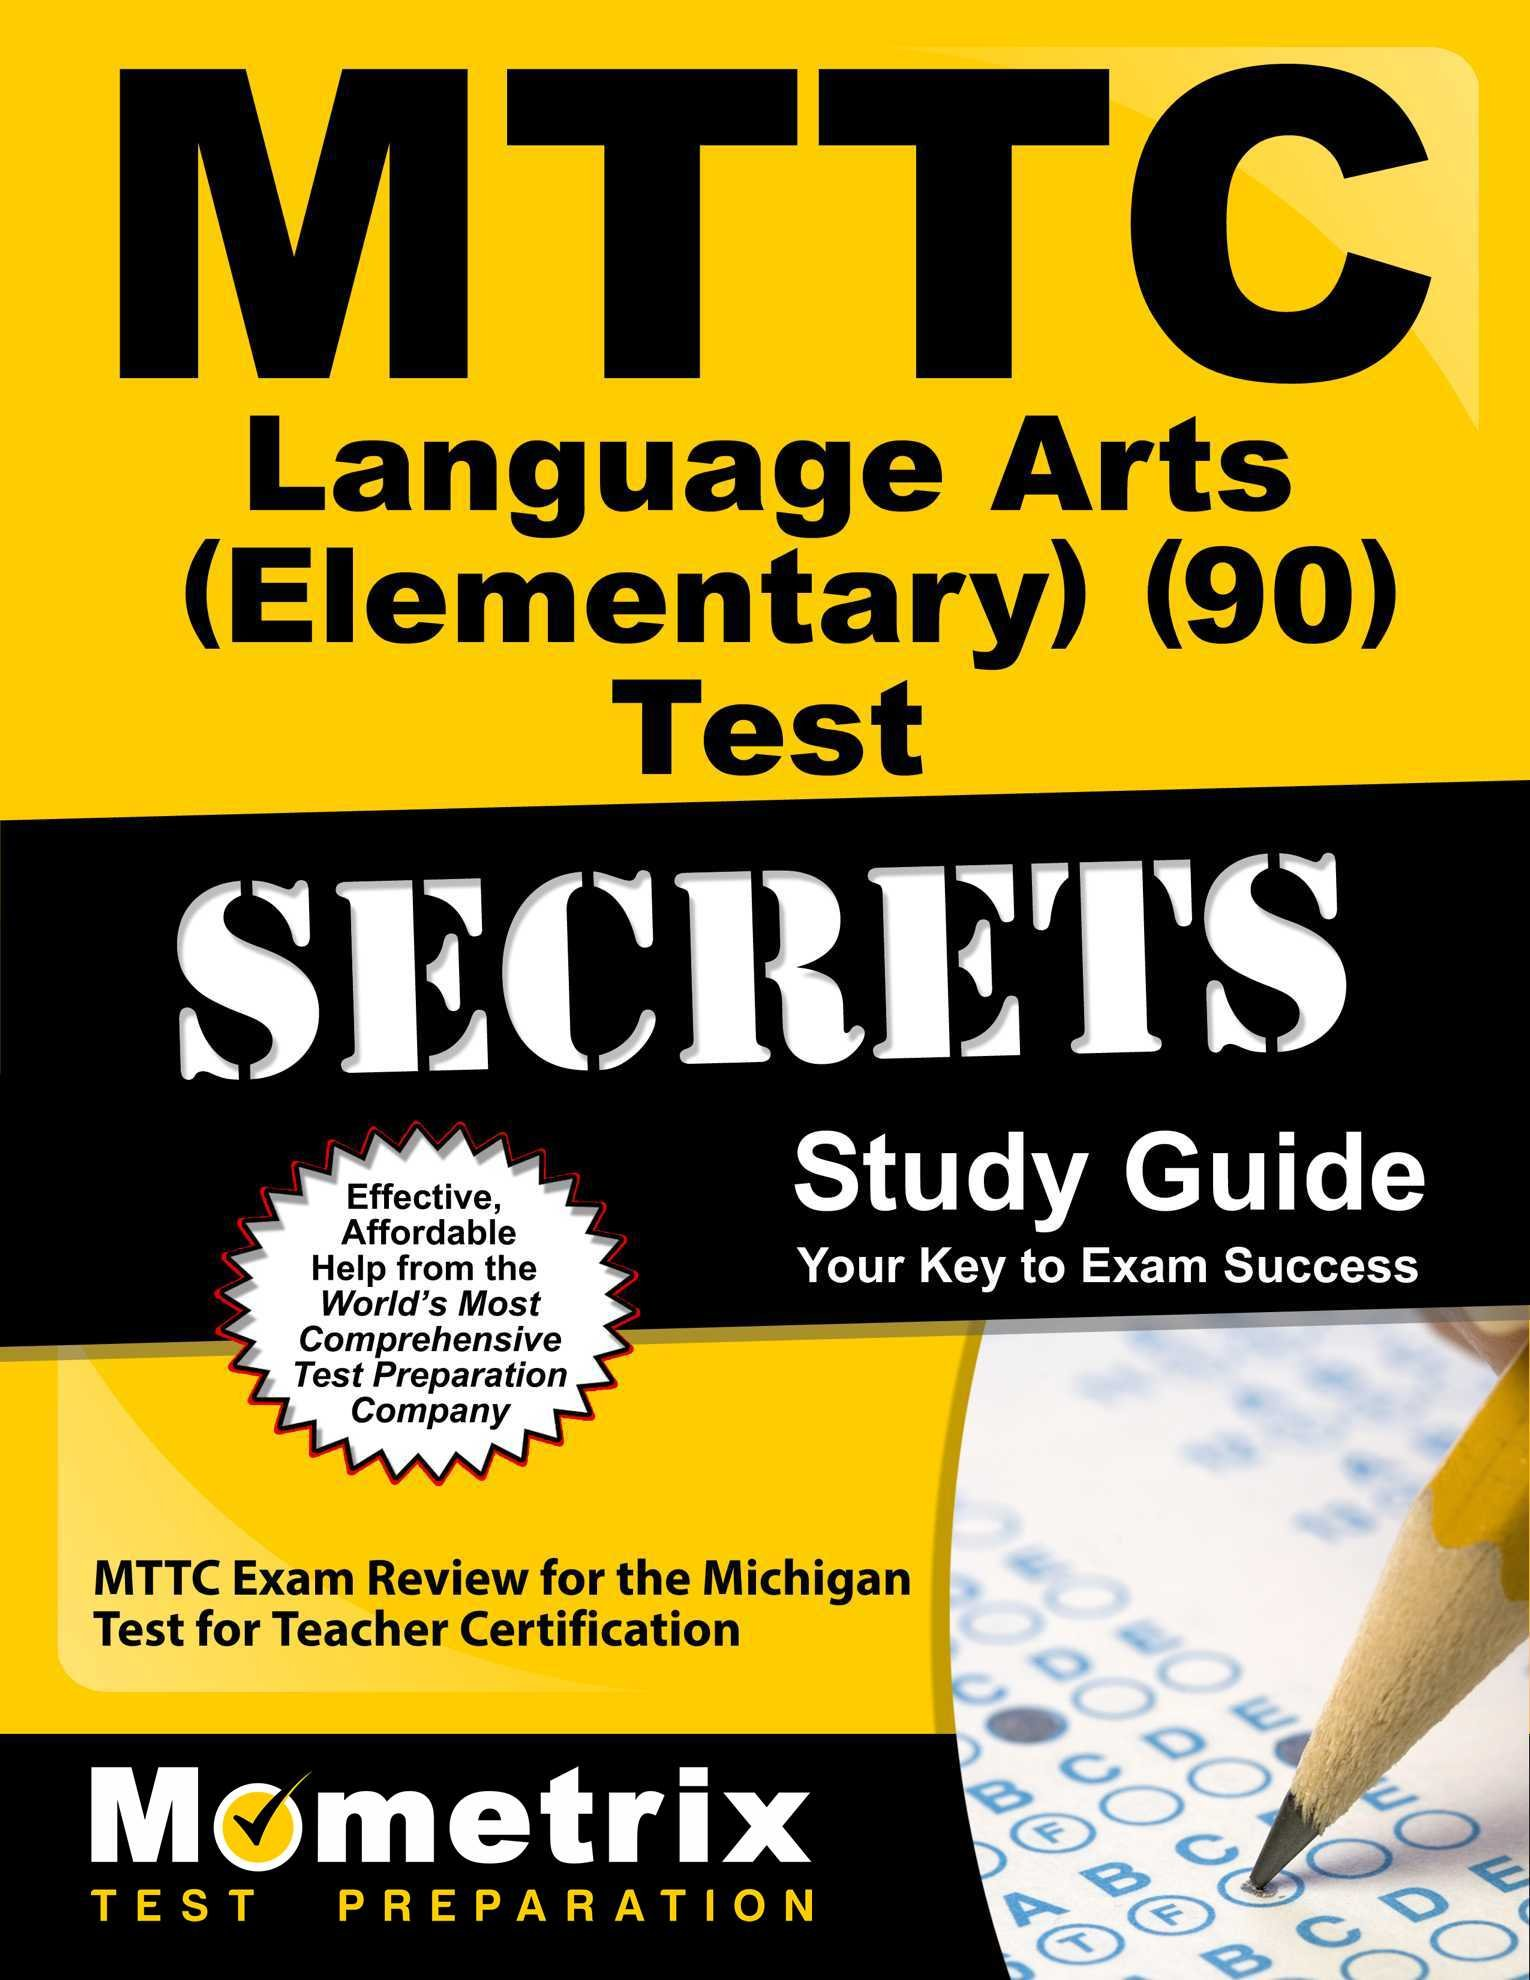 MTTC Language Arts (Elementary) (90) Test Secrets Study Guide: MTTC Exam Review for the Michigan Test for Teacher Certification by Mometrix Media LLC